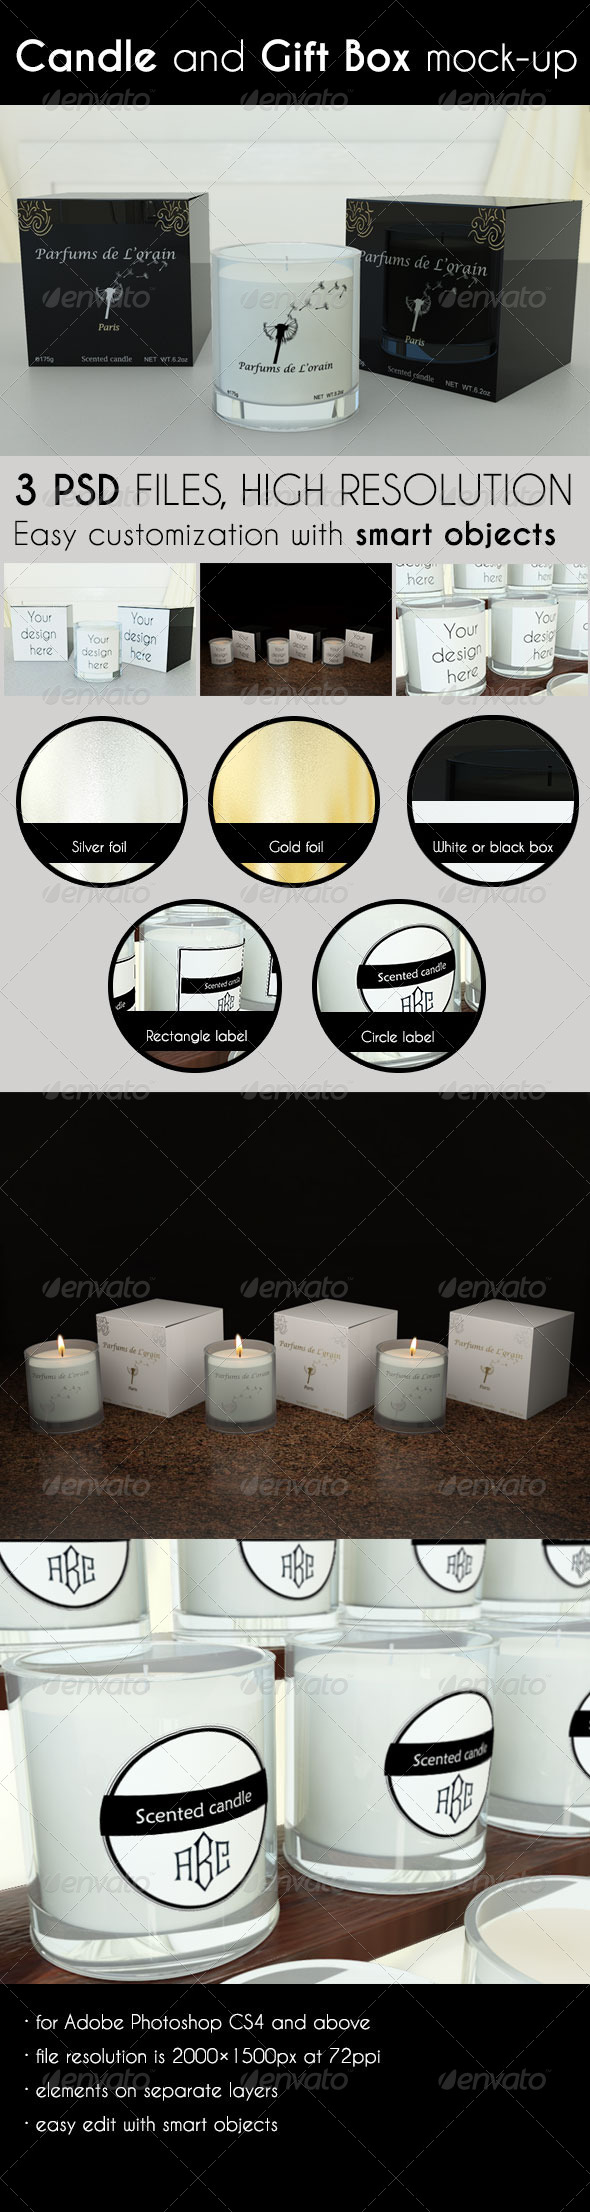 Candle and Gift Box Mock-Up - Product Mock-Ups Graphics